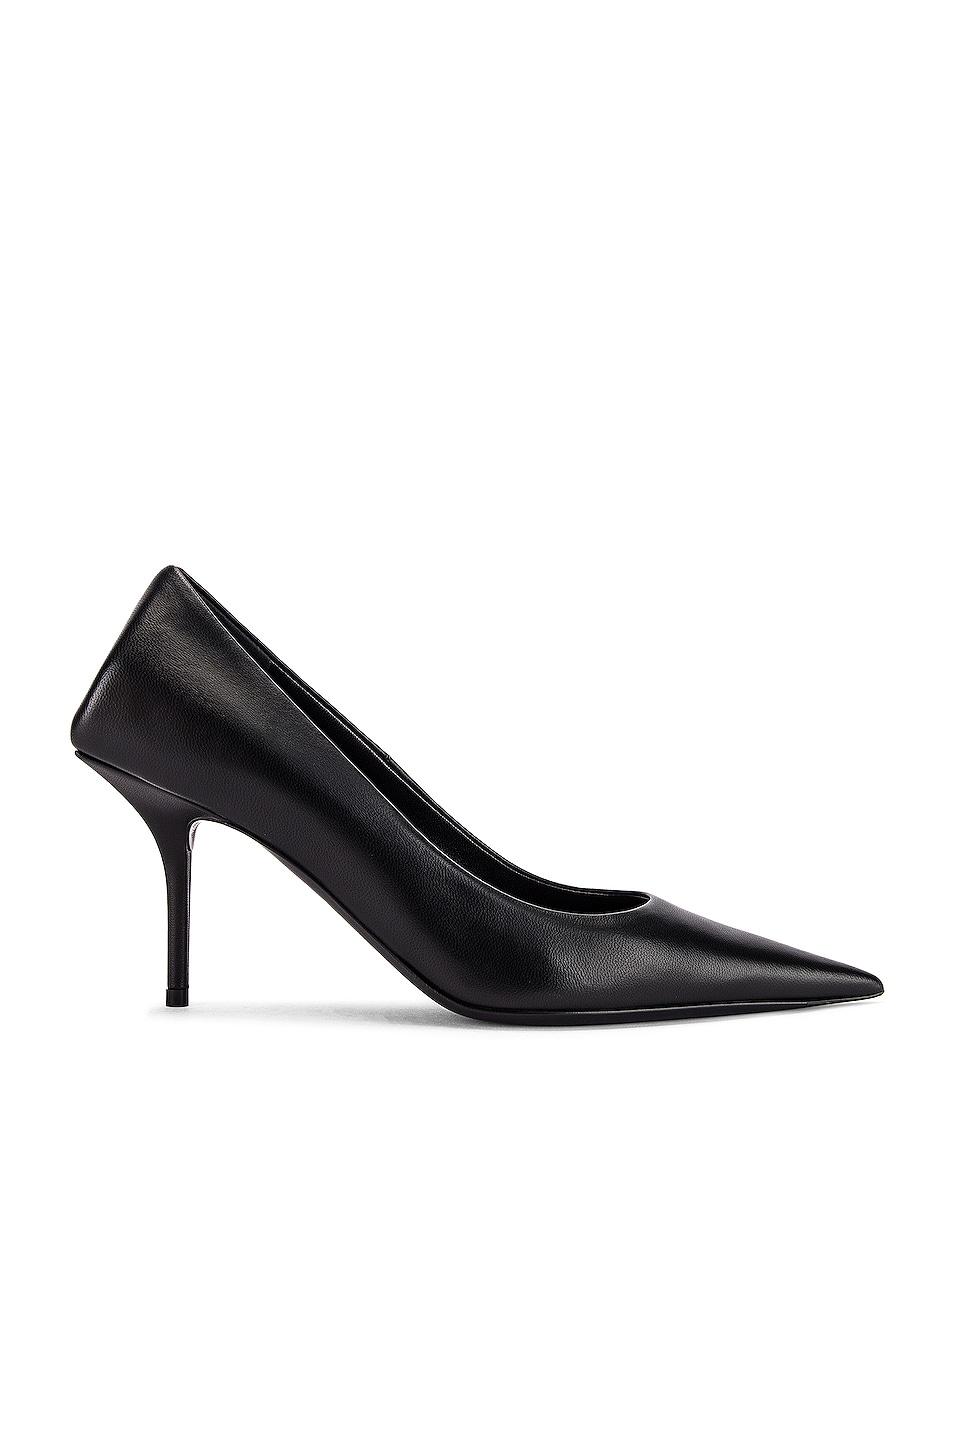 Image 1 of Balenciaga Square Knife Pumps in Black